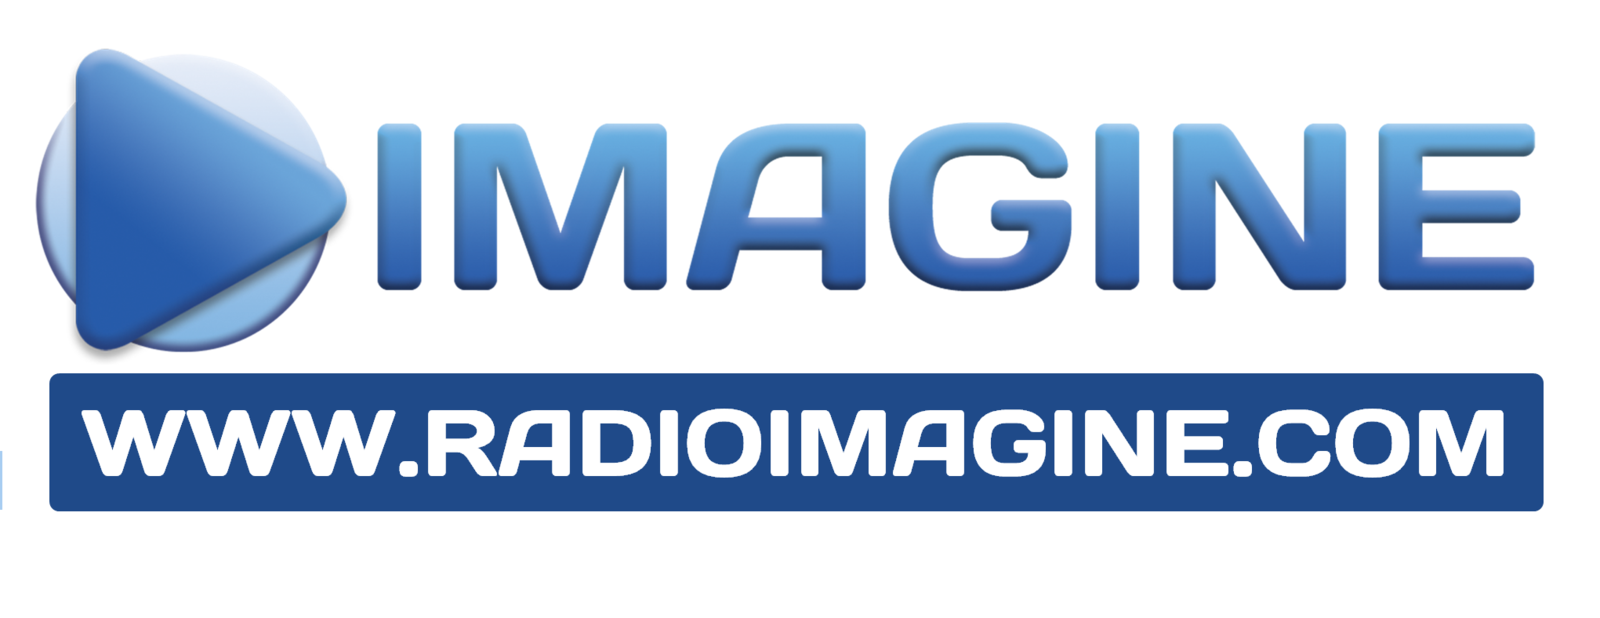 Radio Imagine - Reportage Hautes-Alpes : Presentation des projets de Super Devoluy